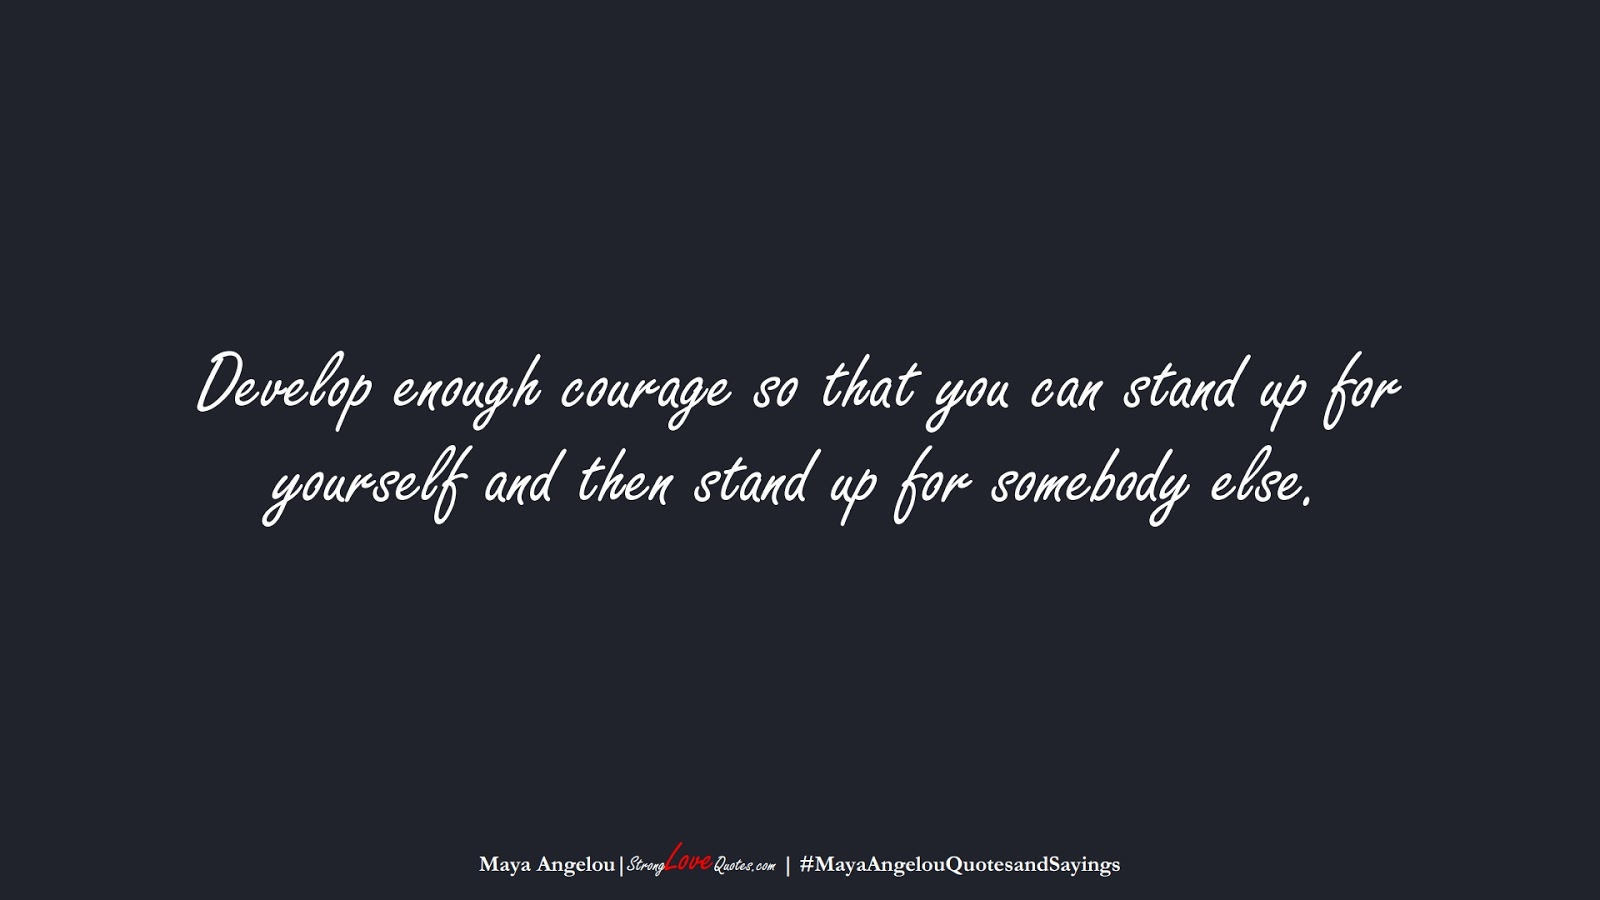 Develop enough courage so that you can stand up for yourself and then stand up for somebody else. (Maya Angelou);  #MayaAngelouQuotesandSayings